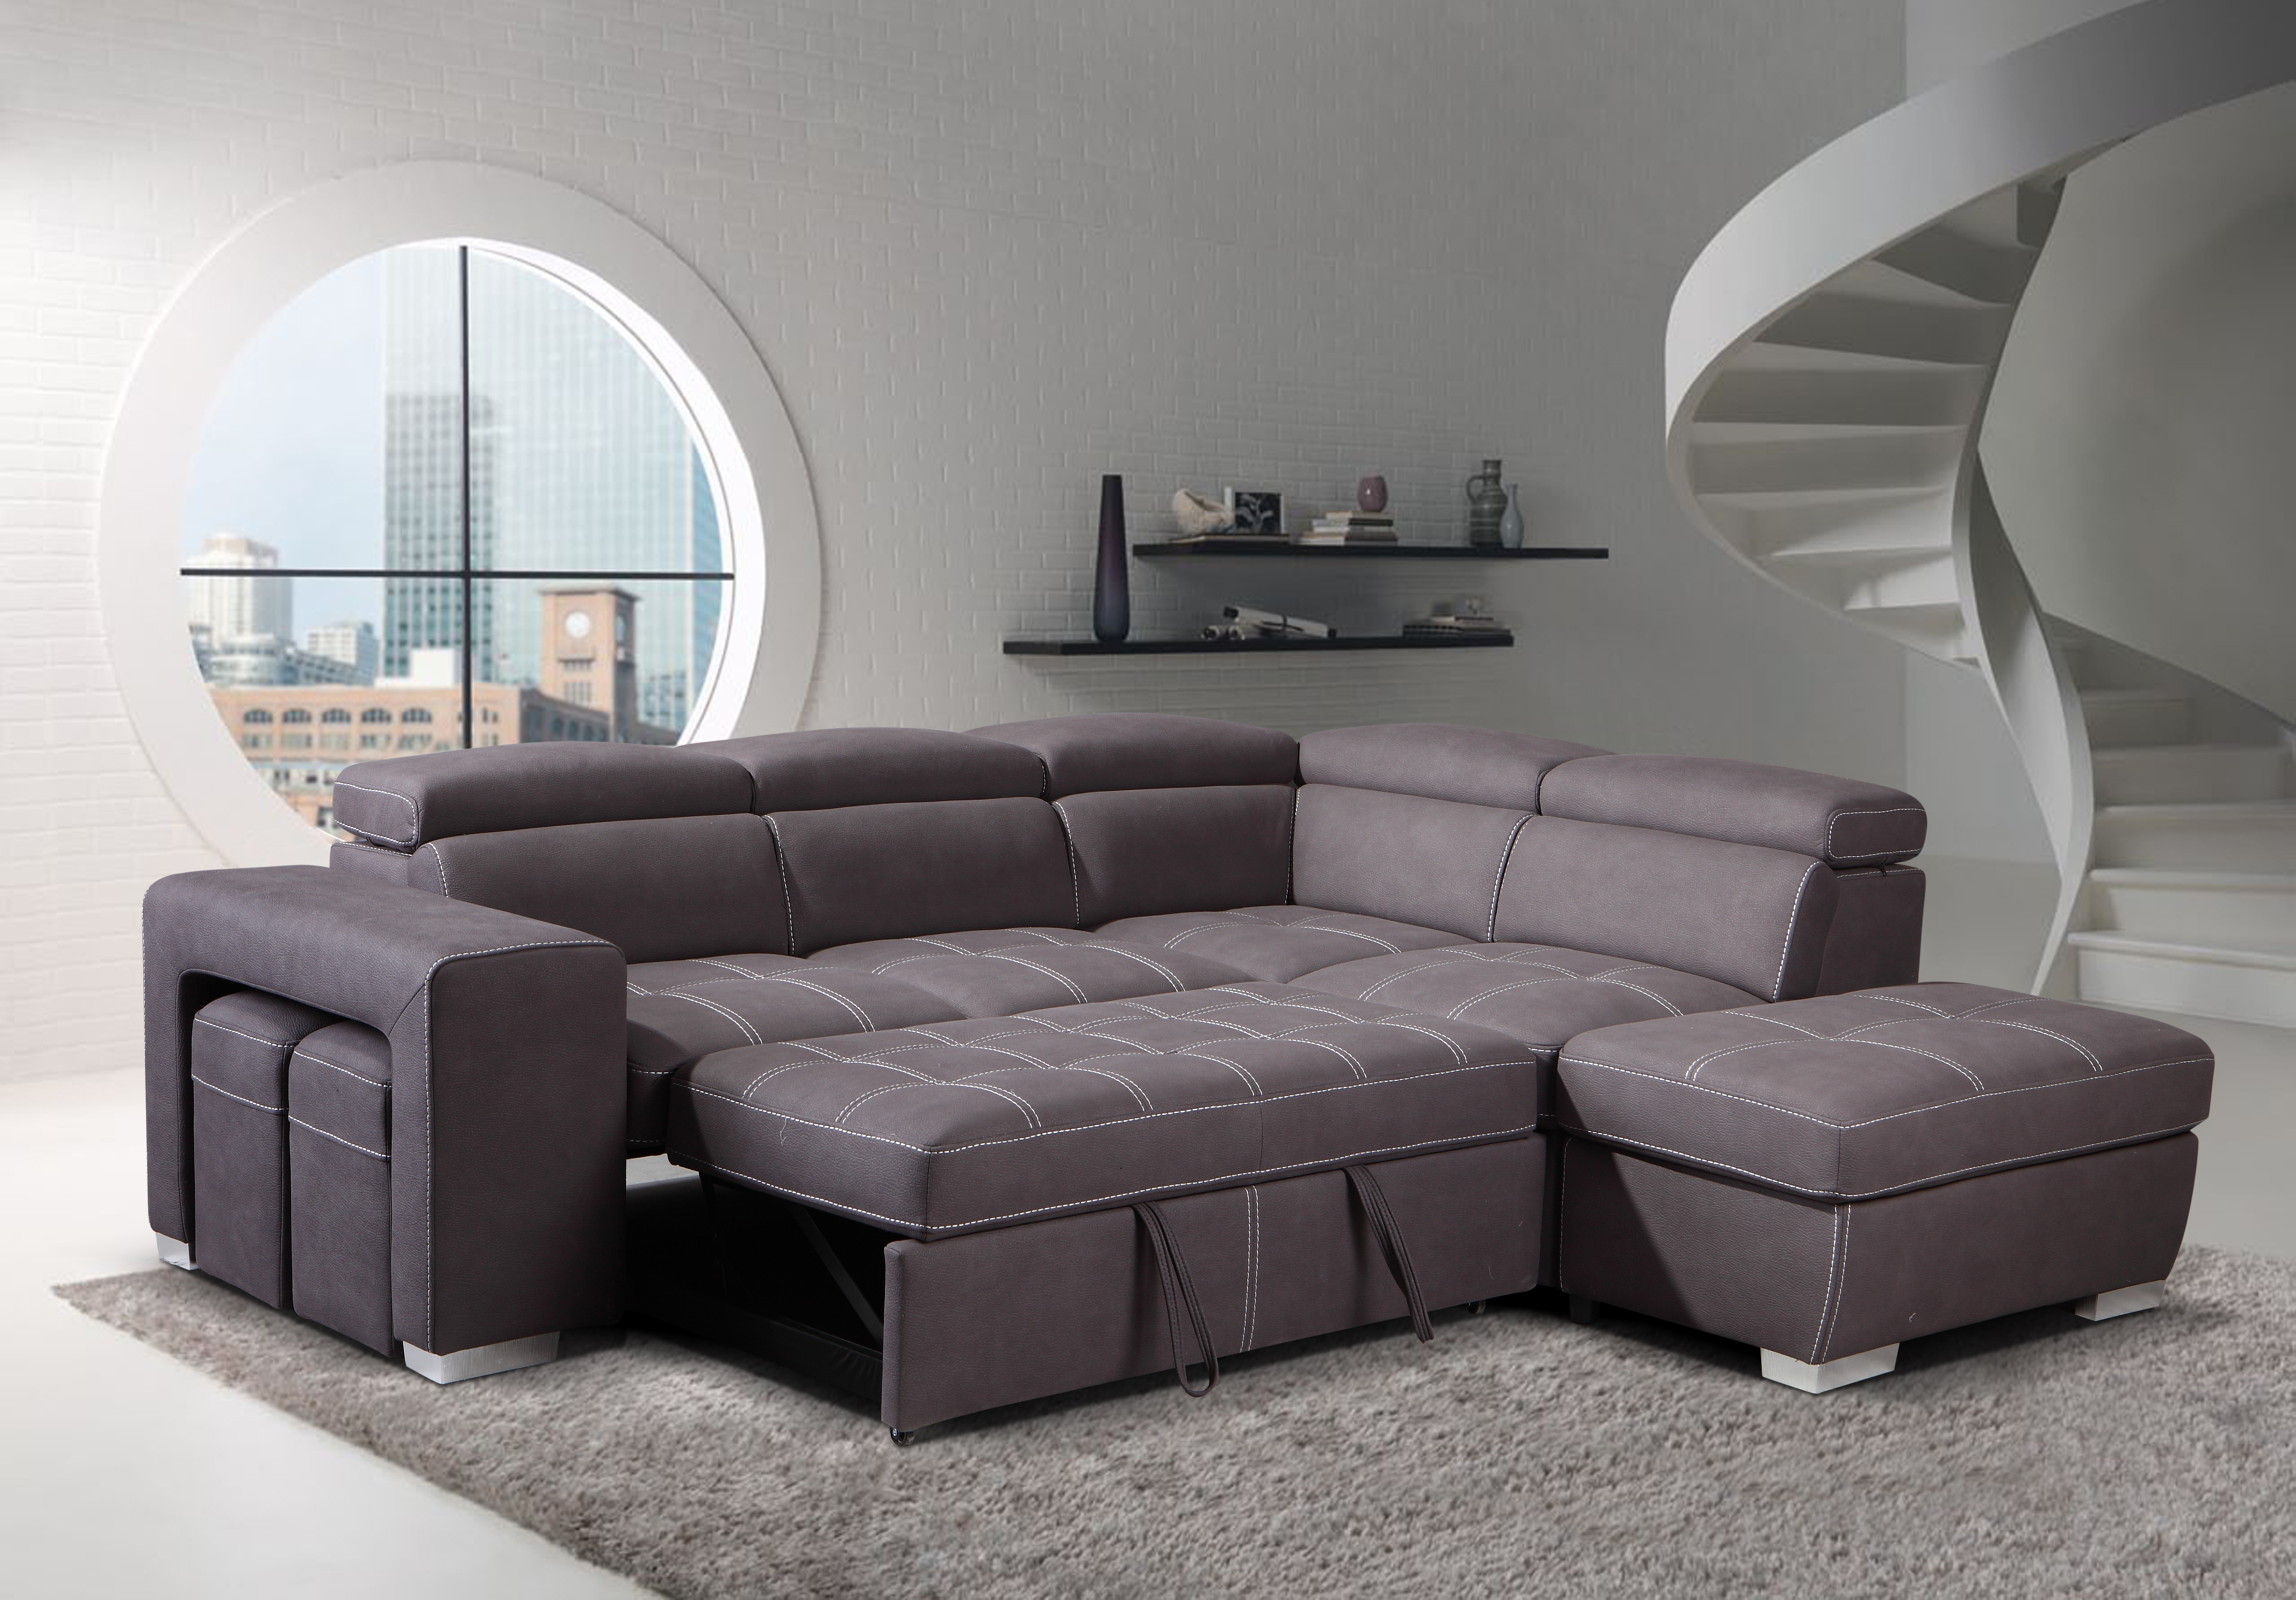 Ispica dolce casa outlet for Casa outlet